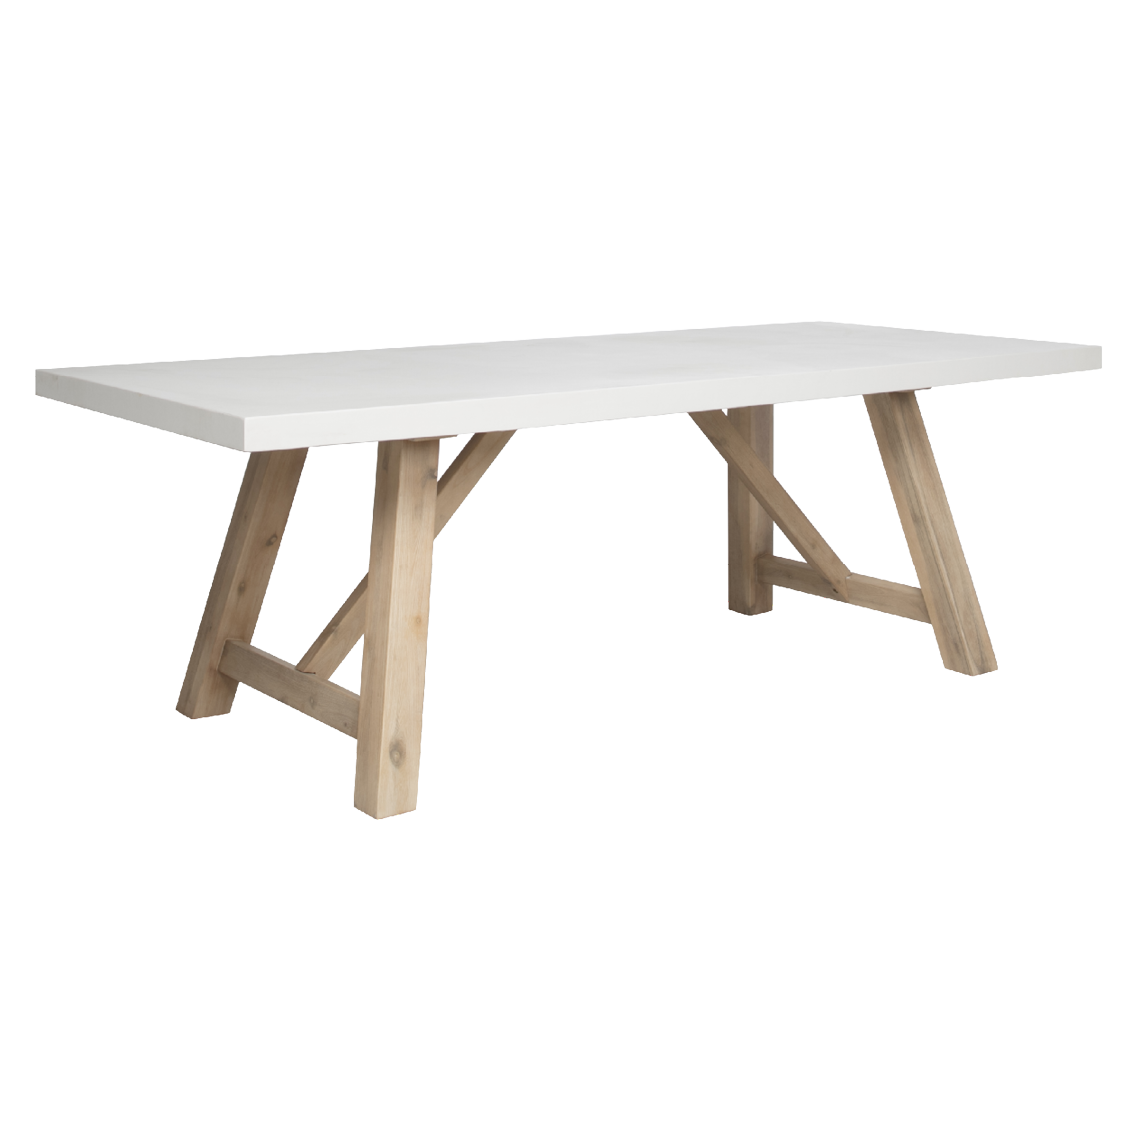 39137 Popular Category - Deep etches_Outdoor Dining Tables.png